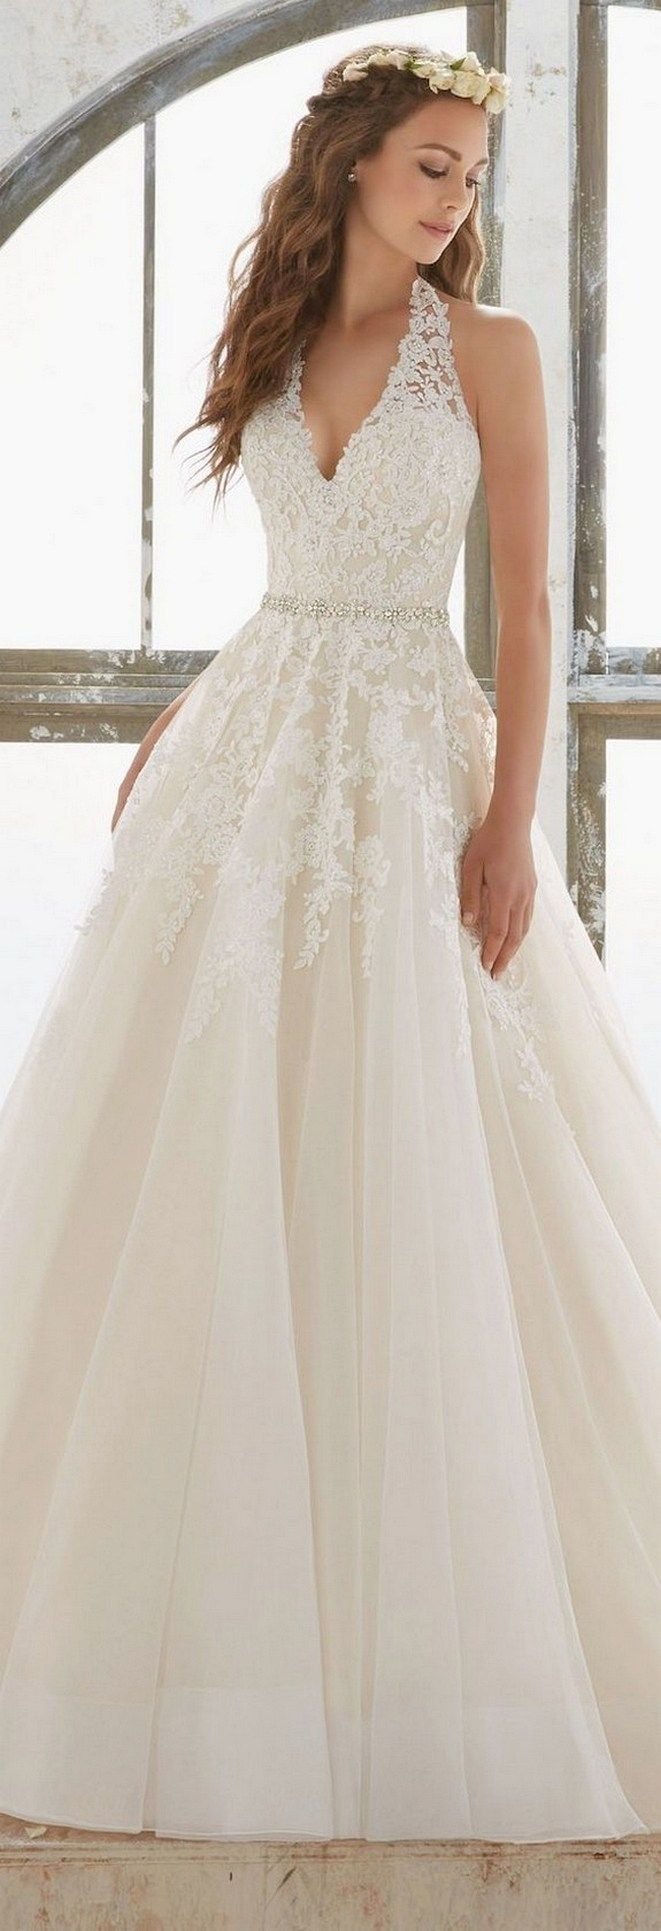 70 romantic valentine day wedding dress ideas (28)